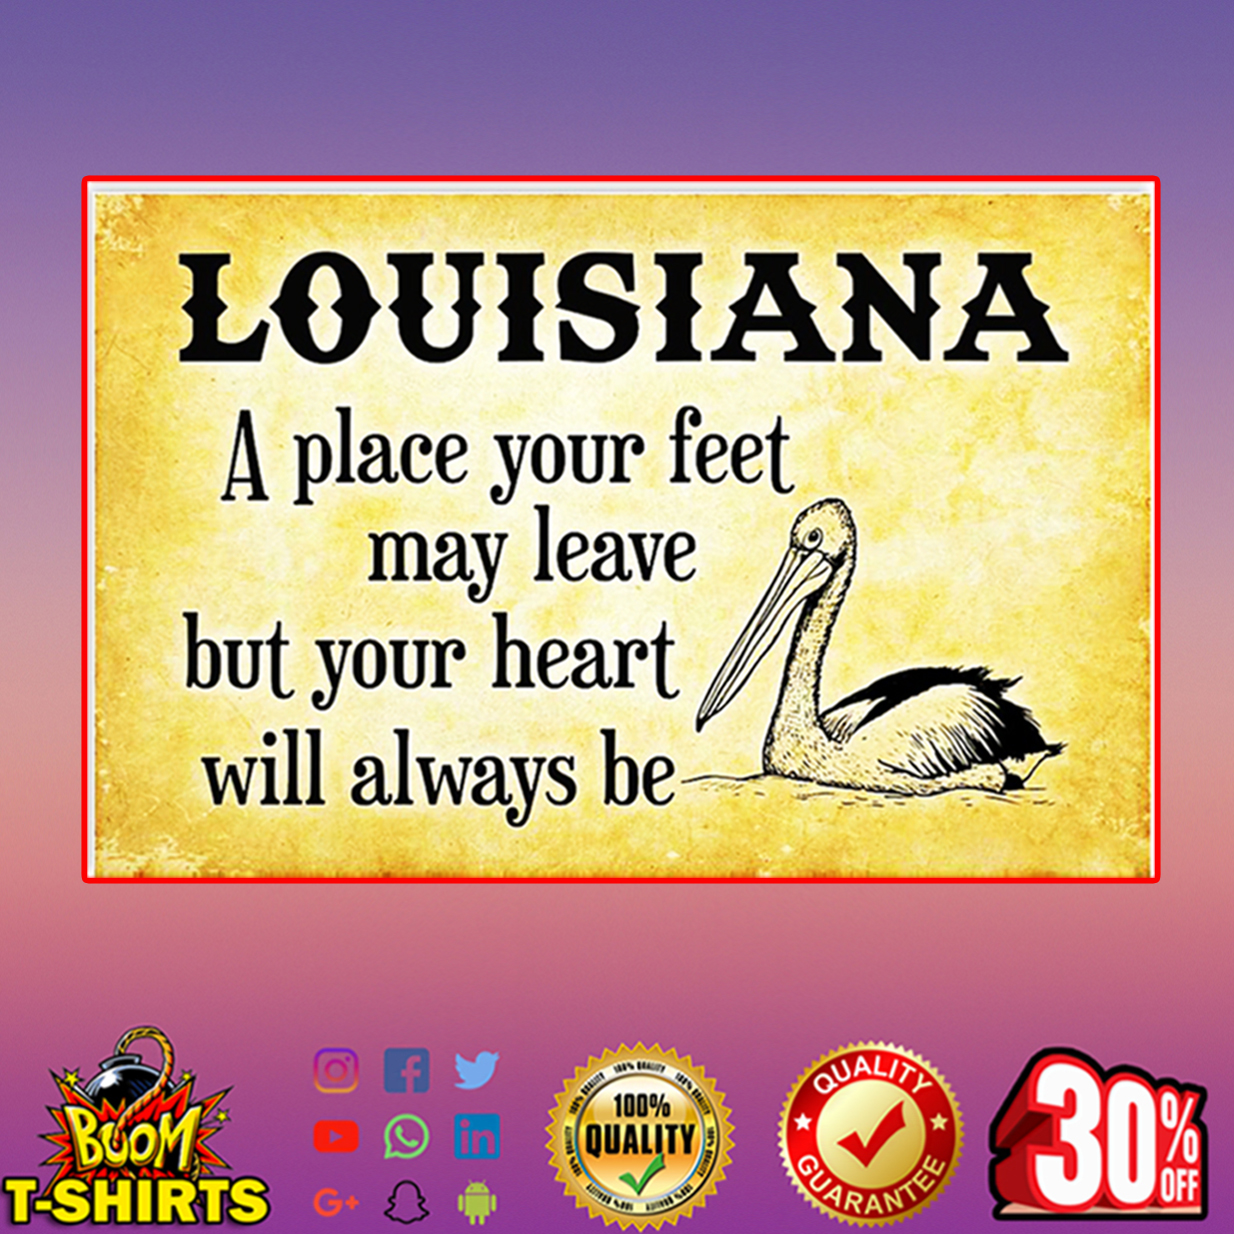 Louisiana a place your feet may leave but your heart will always be poster